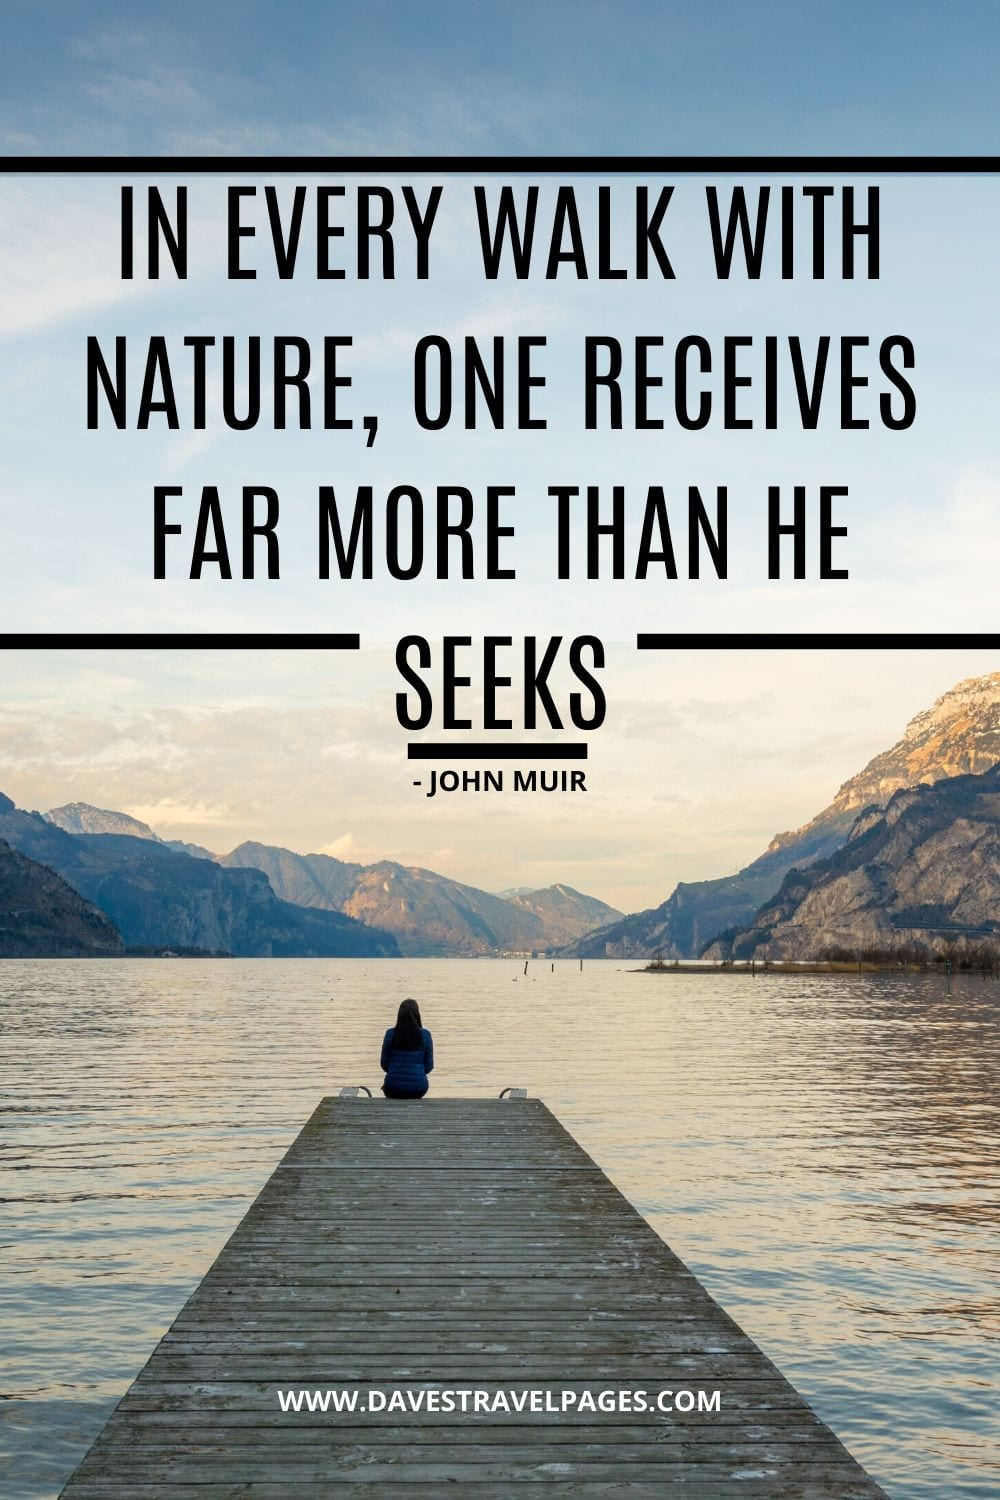 Quotes about walking - In every walk with nature, one receives far more than he seeks - John Muir